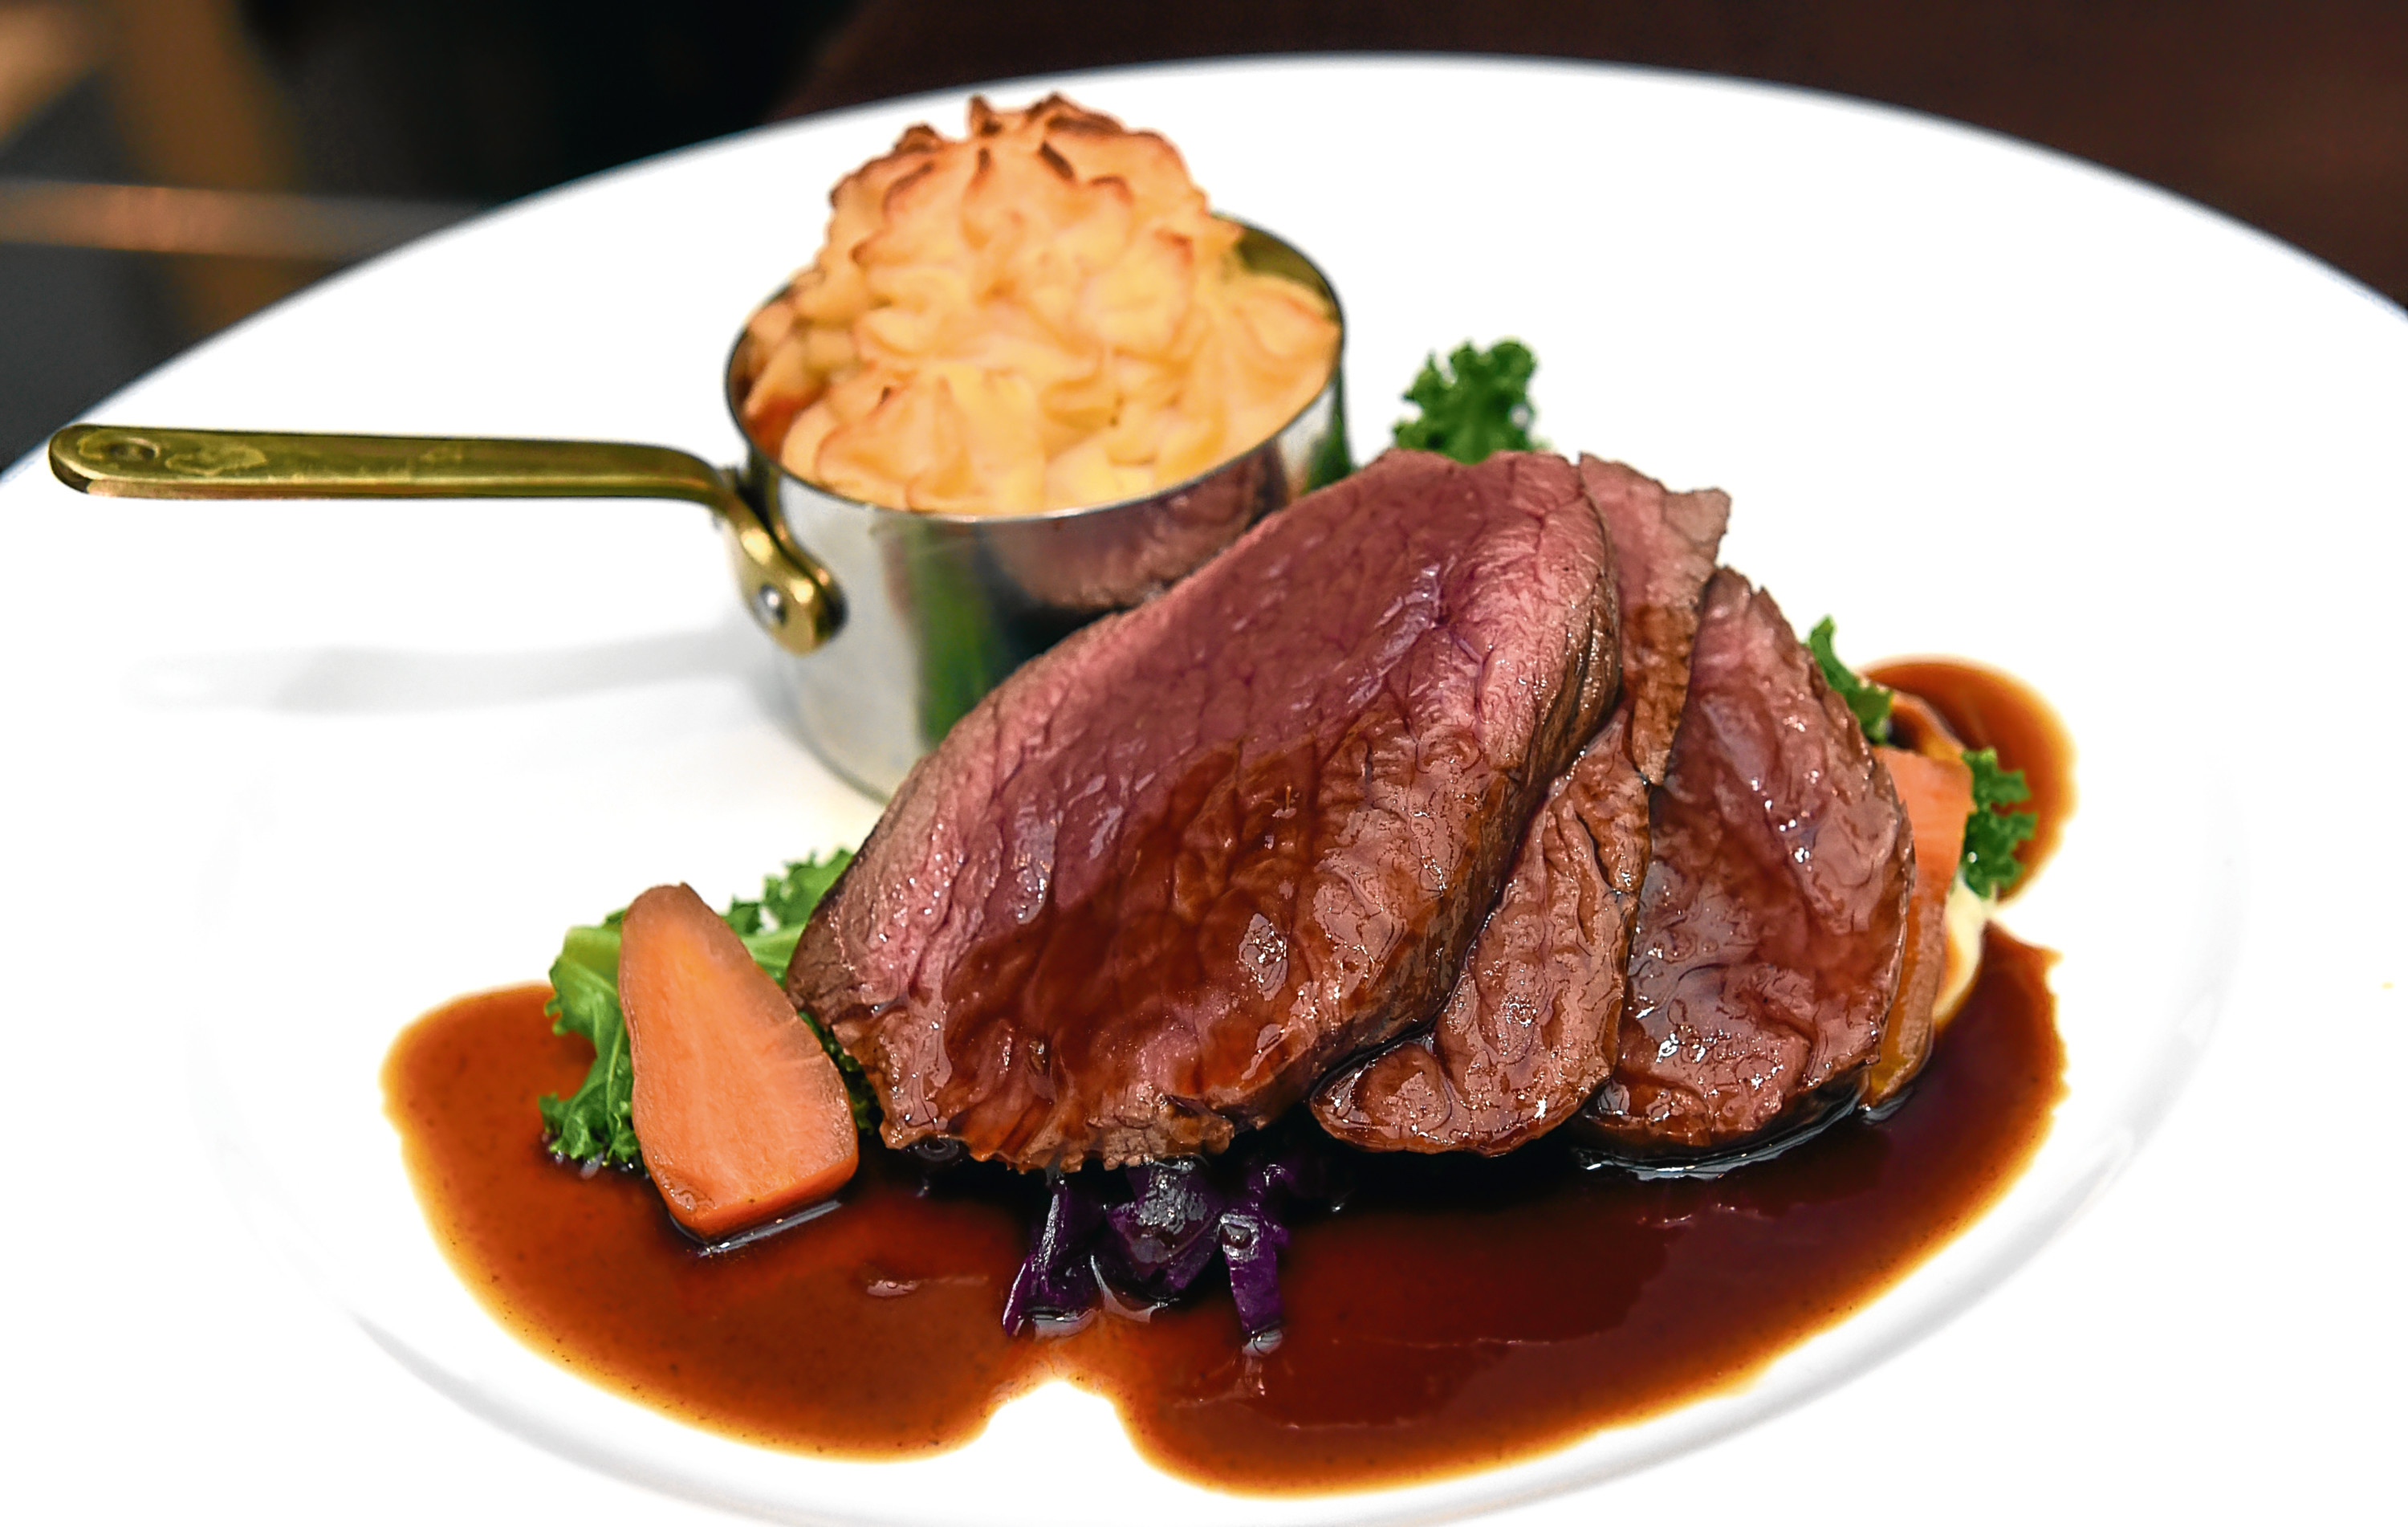 The duo of venison dish